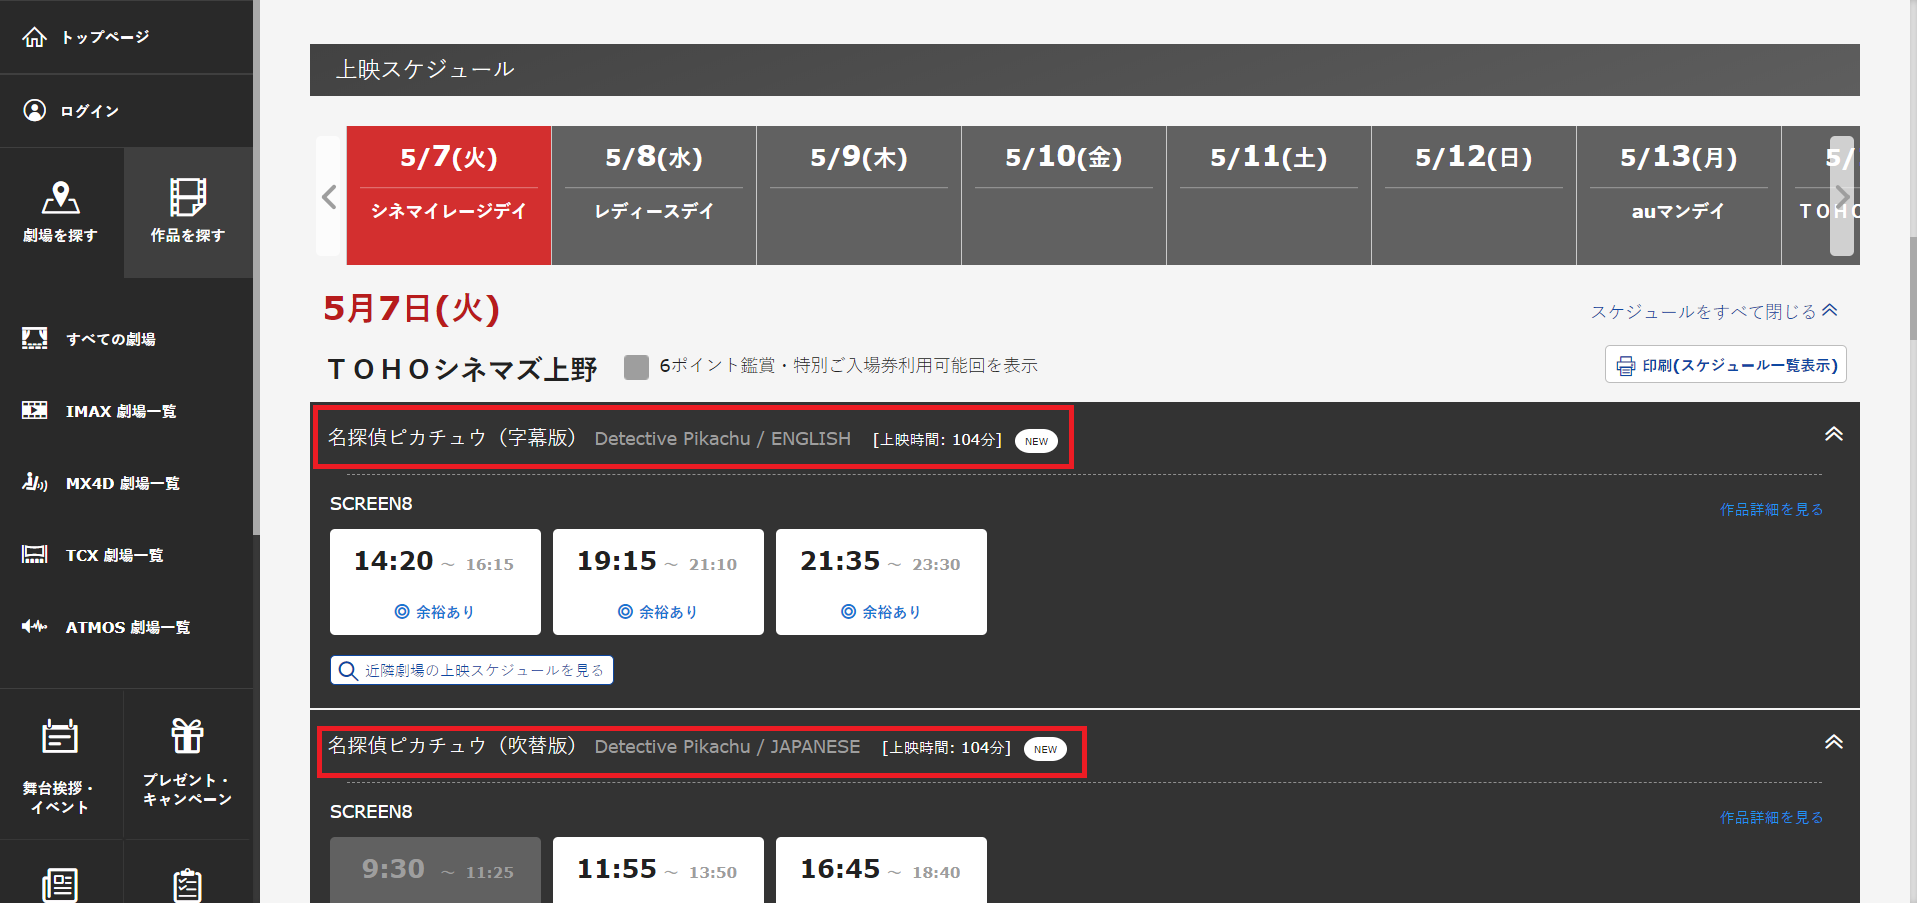 Steps on How to Buy Movie Tickets Online for Toho Cinemas-03-04-2